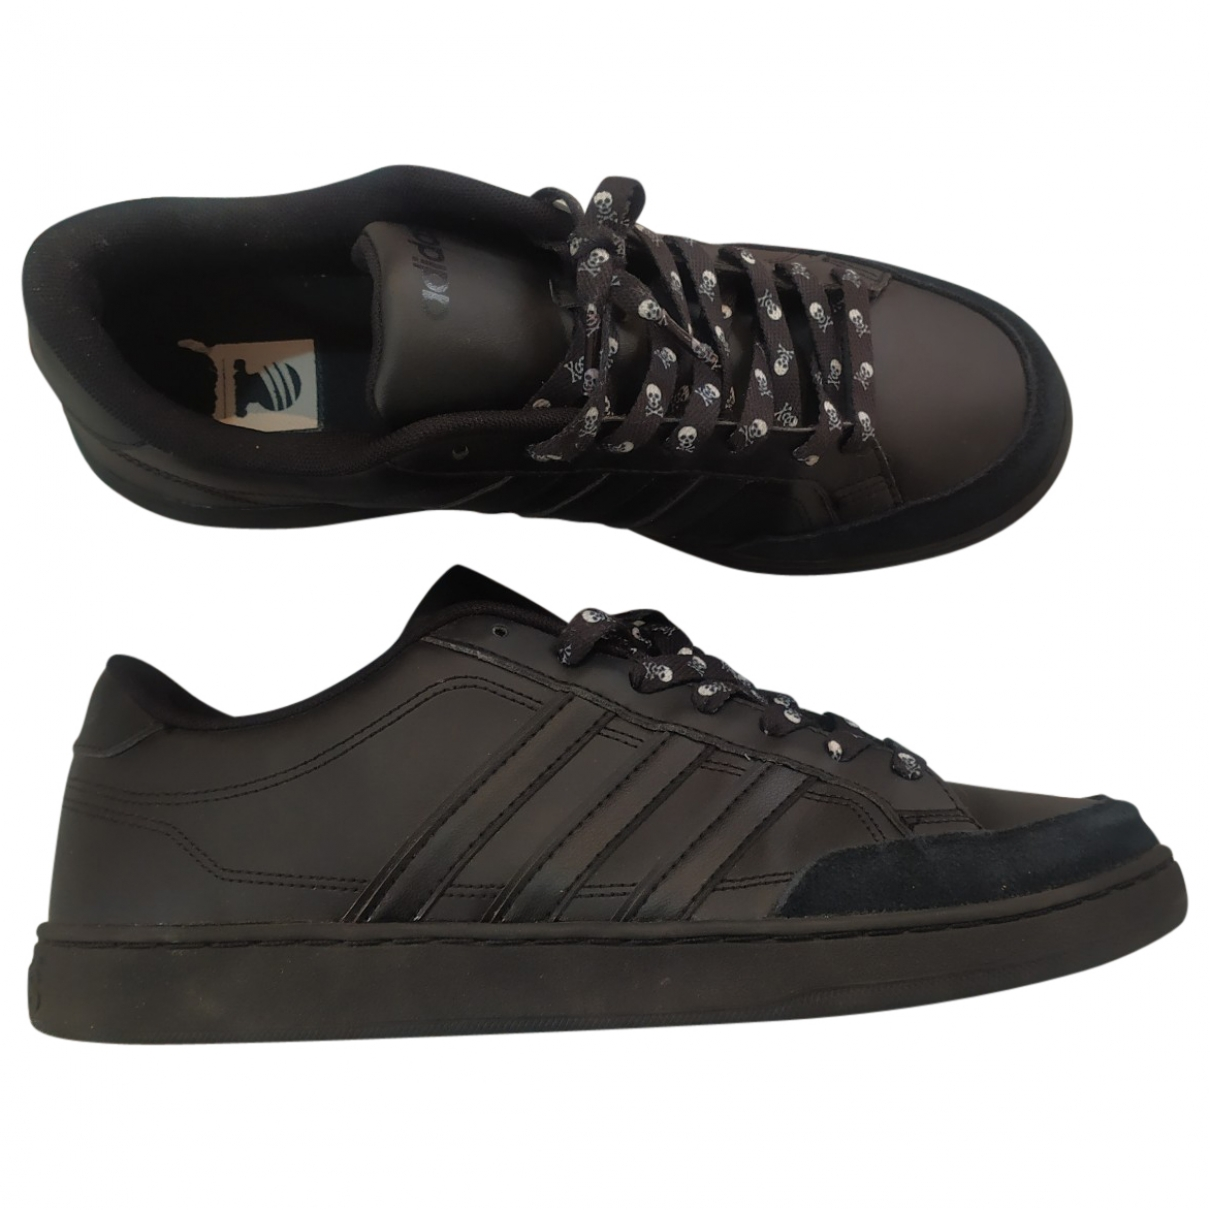 Adidas \N Black Leather Trainers for Men 43.5 EU